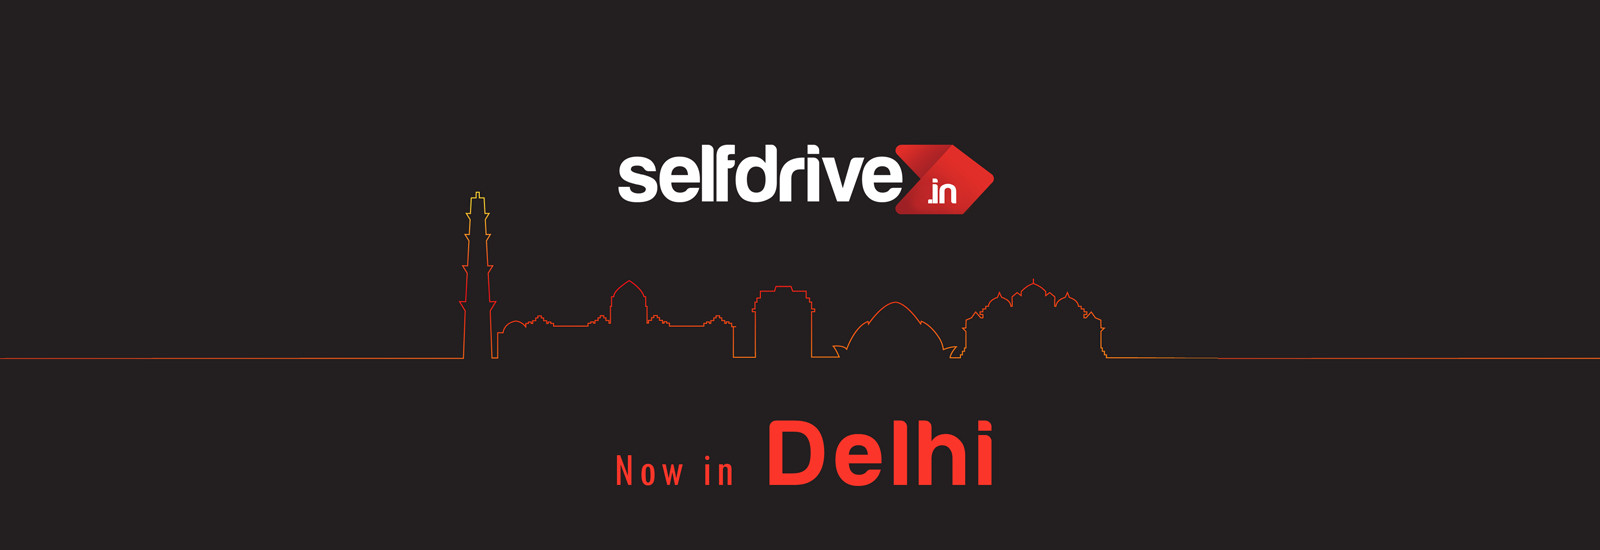 Selfdrive Now in Delhi